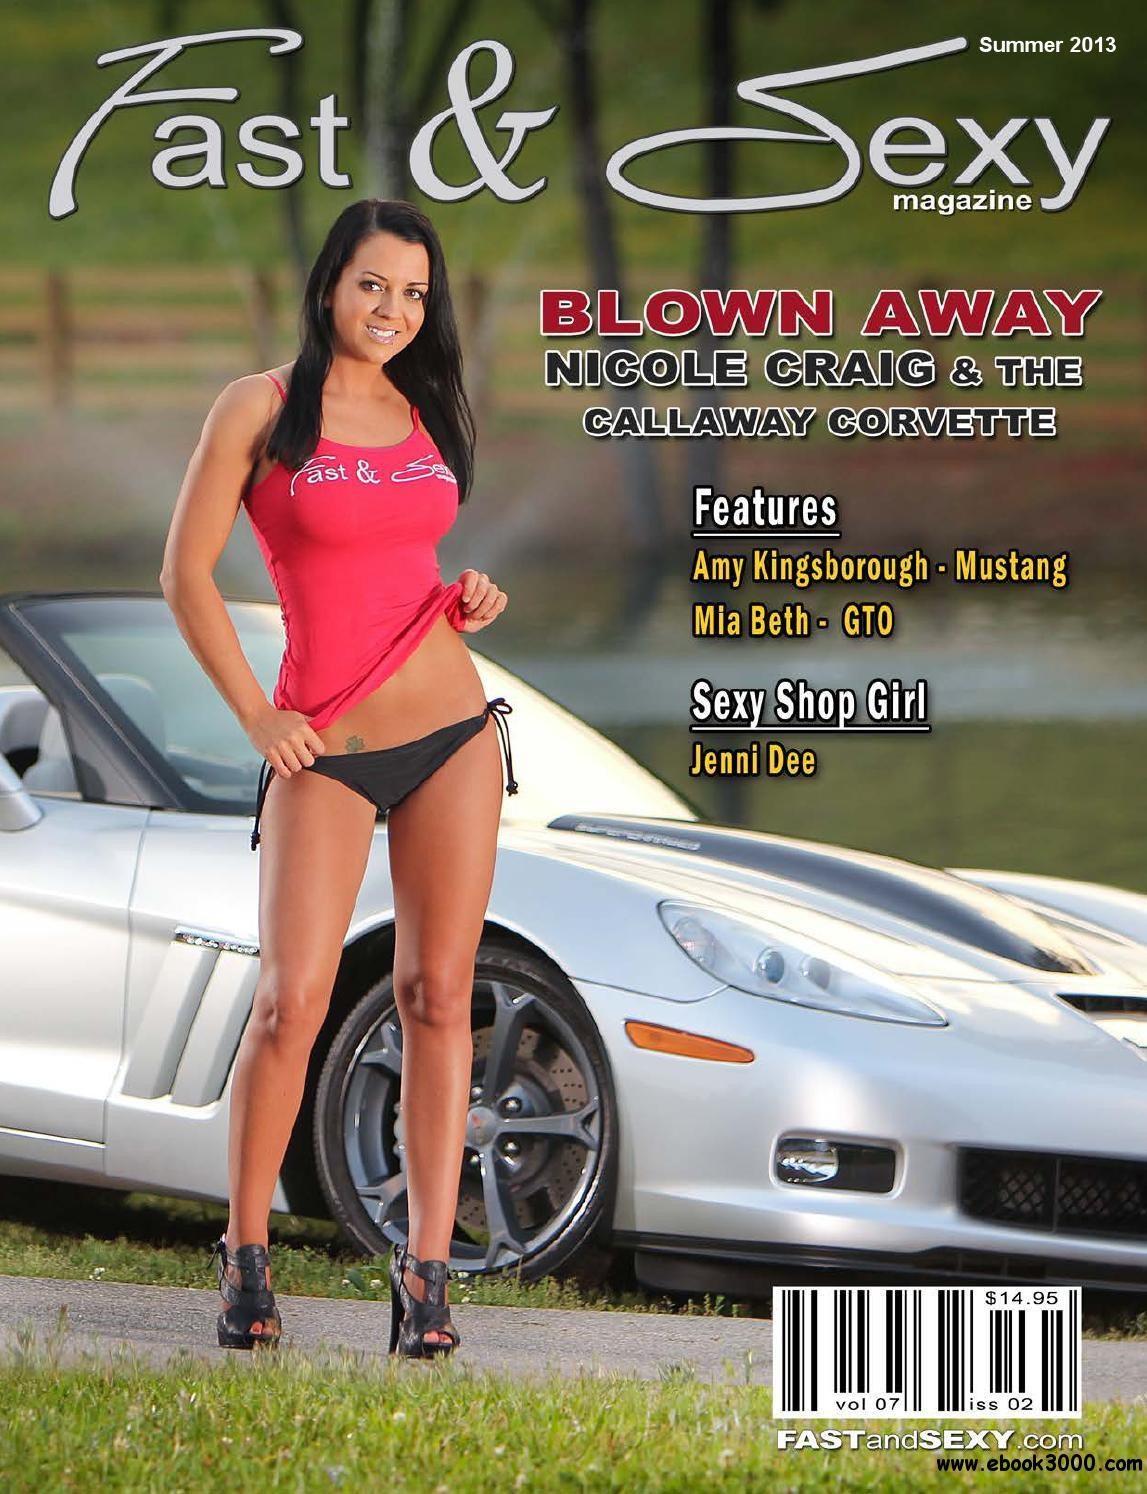 Fast & Sexy C Summer 2013 free download